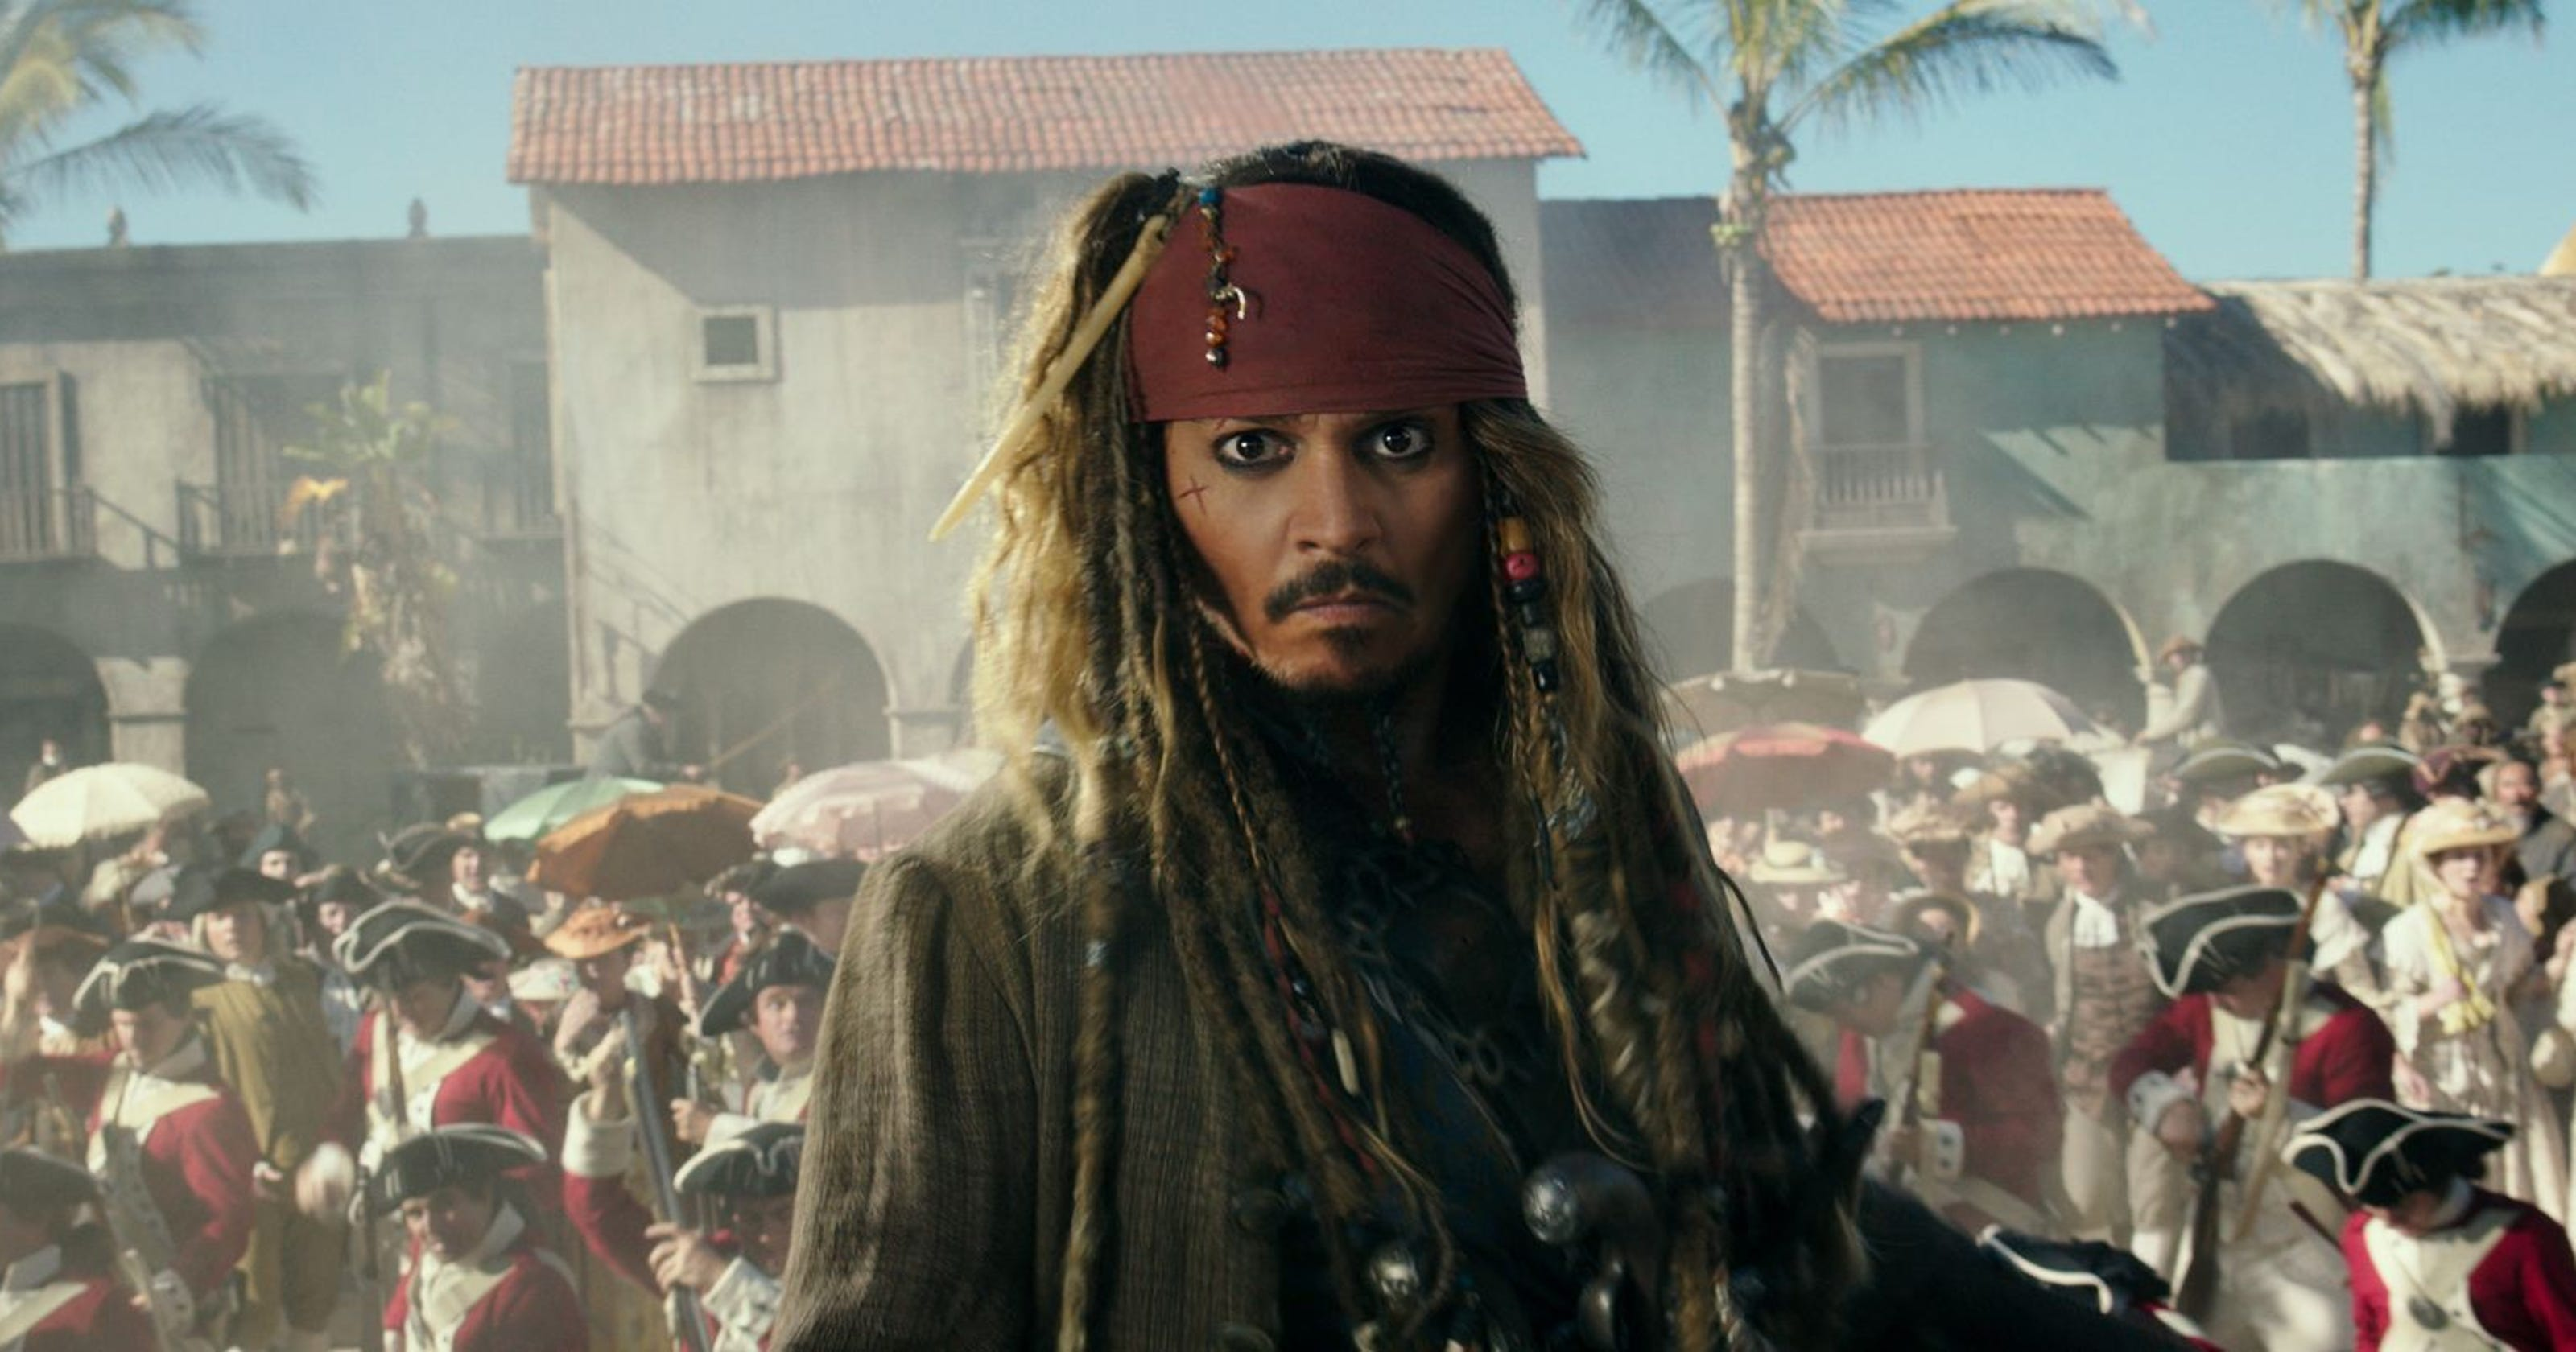 d027fce98499b  Pirates of the Caribbean   About that death and post-credits scene